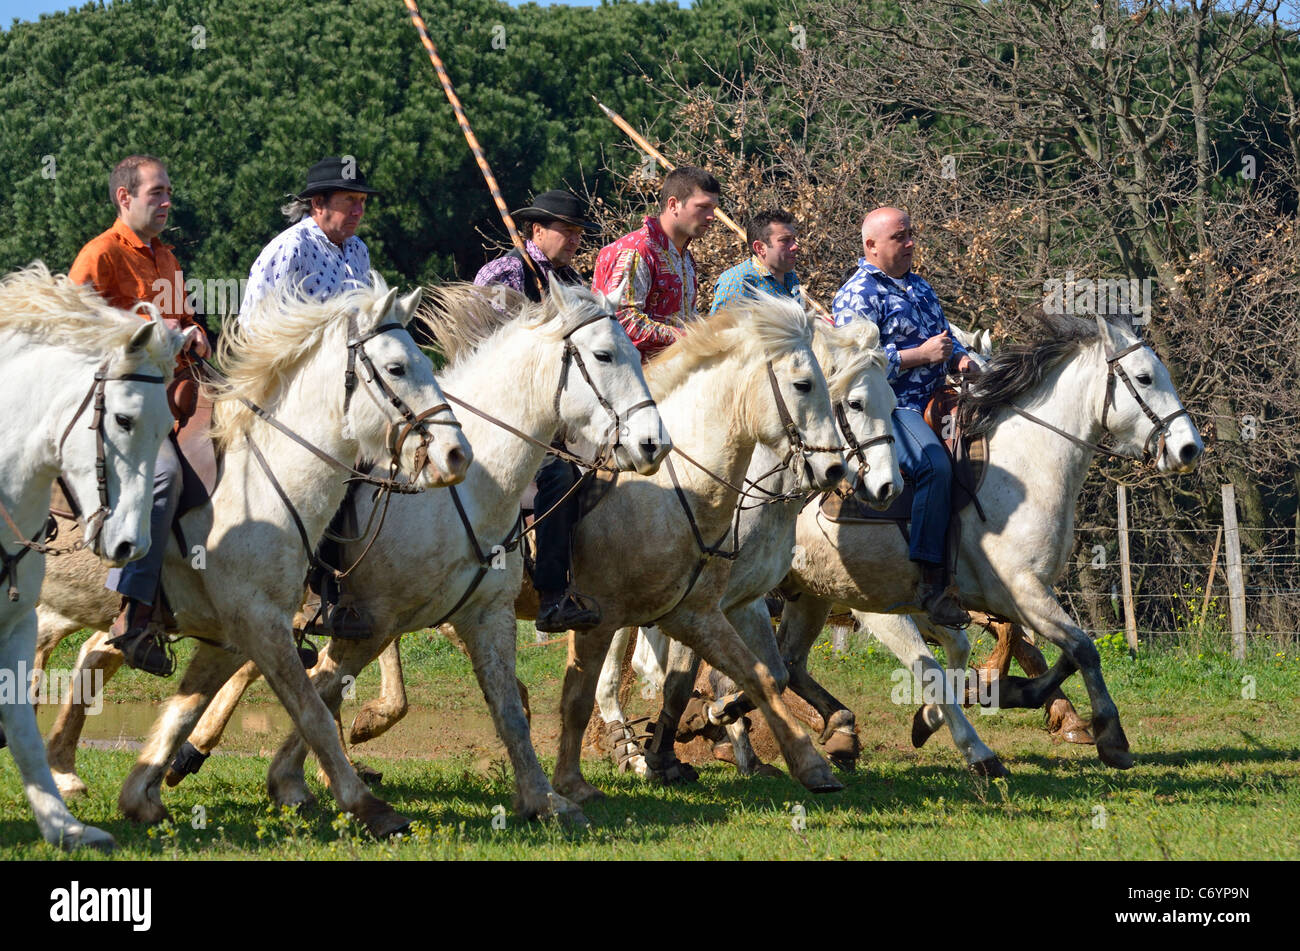 Gardians or Camargue cowboys riding horse and holding the traditional camargue rod used to bring together the bulls, - Stock Image